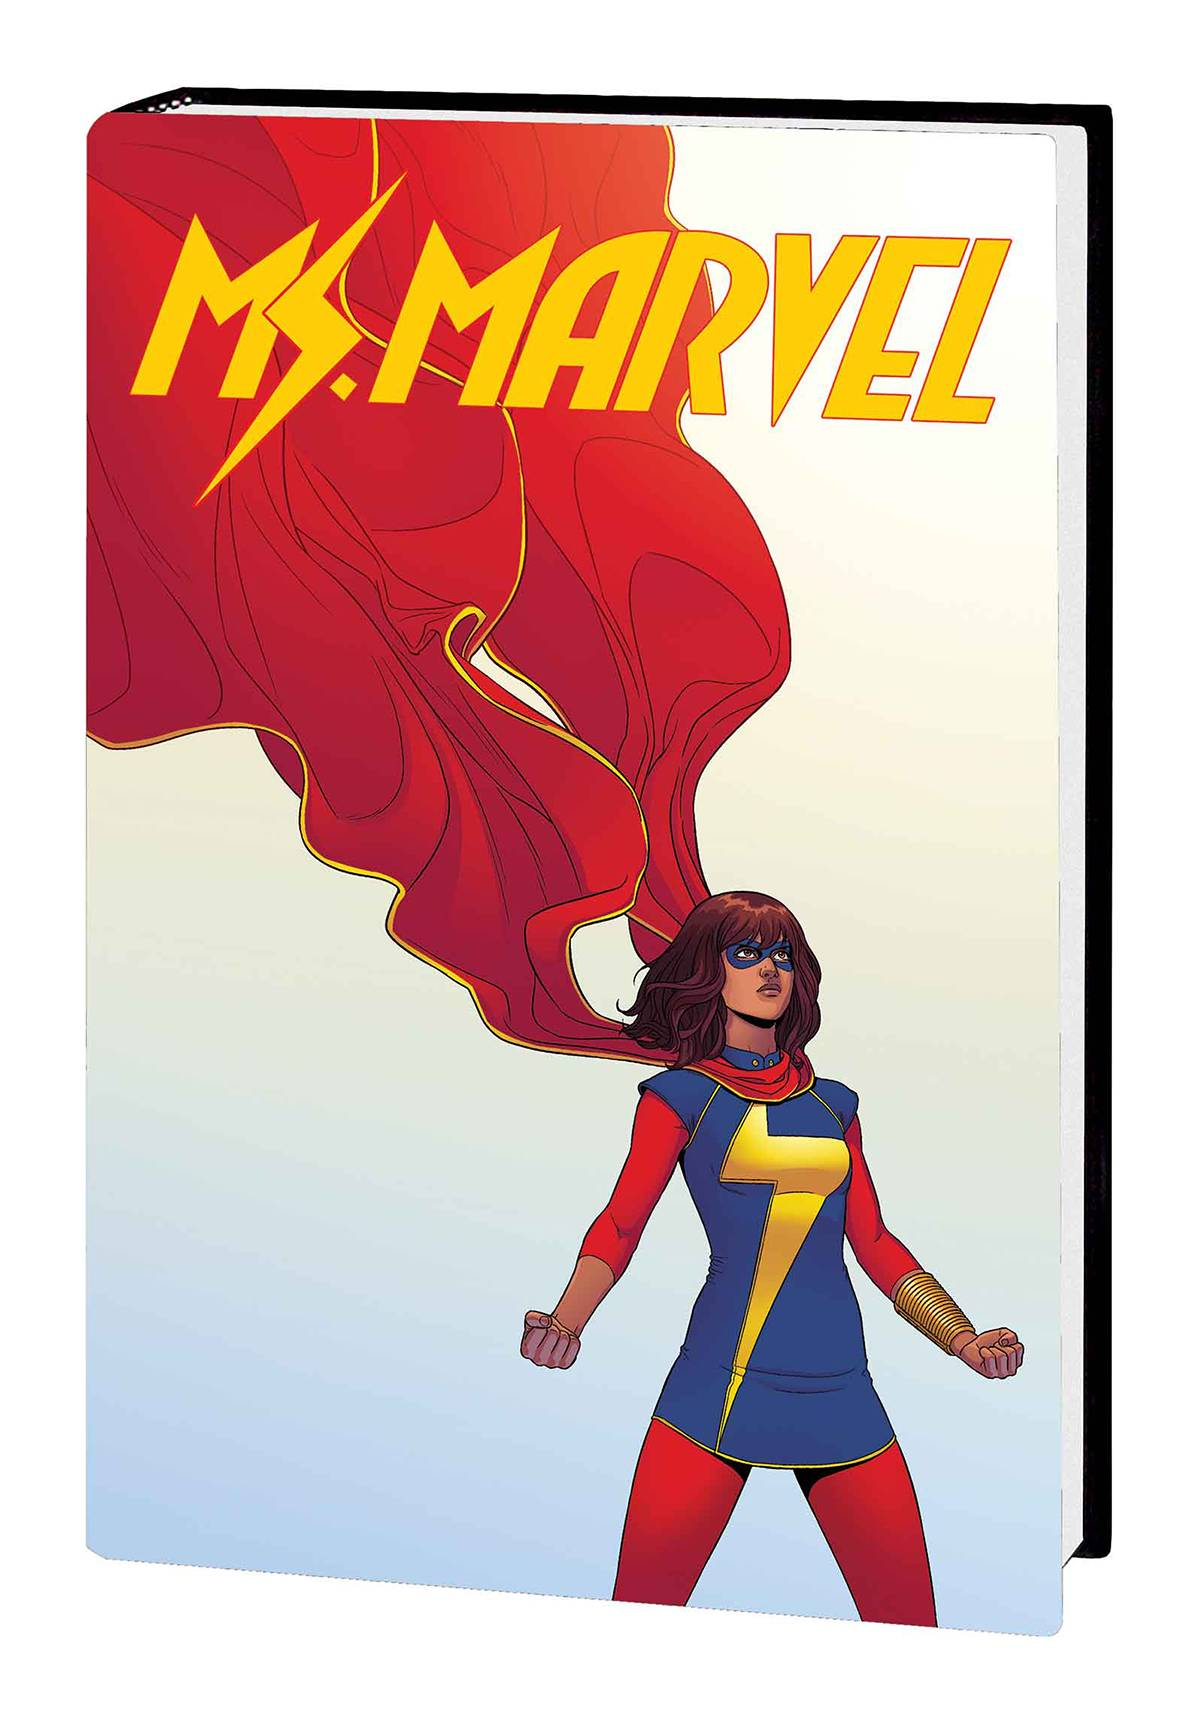 Ms Marvel Volume One Omnibus, Collecting Over Twenty Issues Of The  Criticallyacclaimed Series! This Hardcoveres Signed By Author G Willow  Wilson